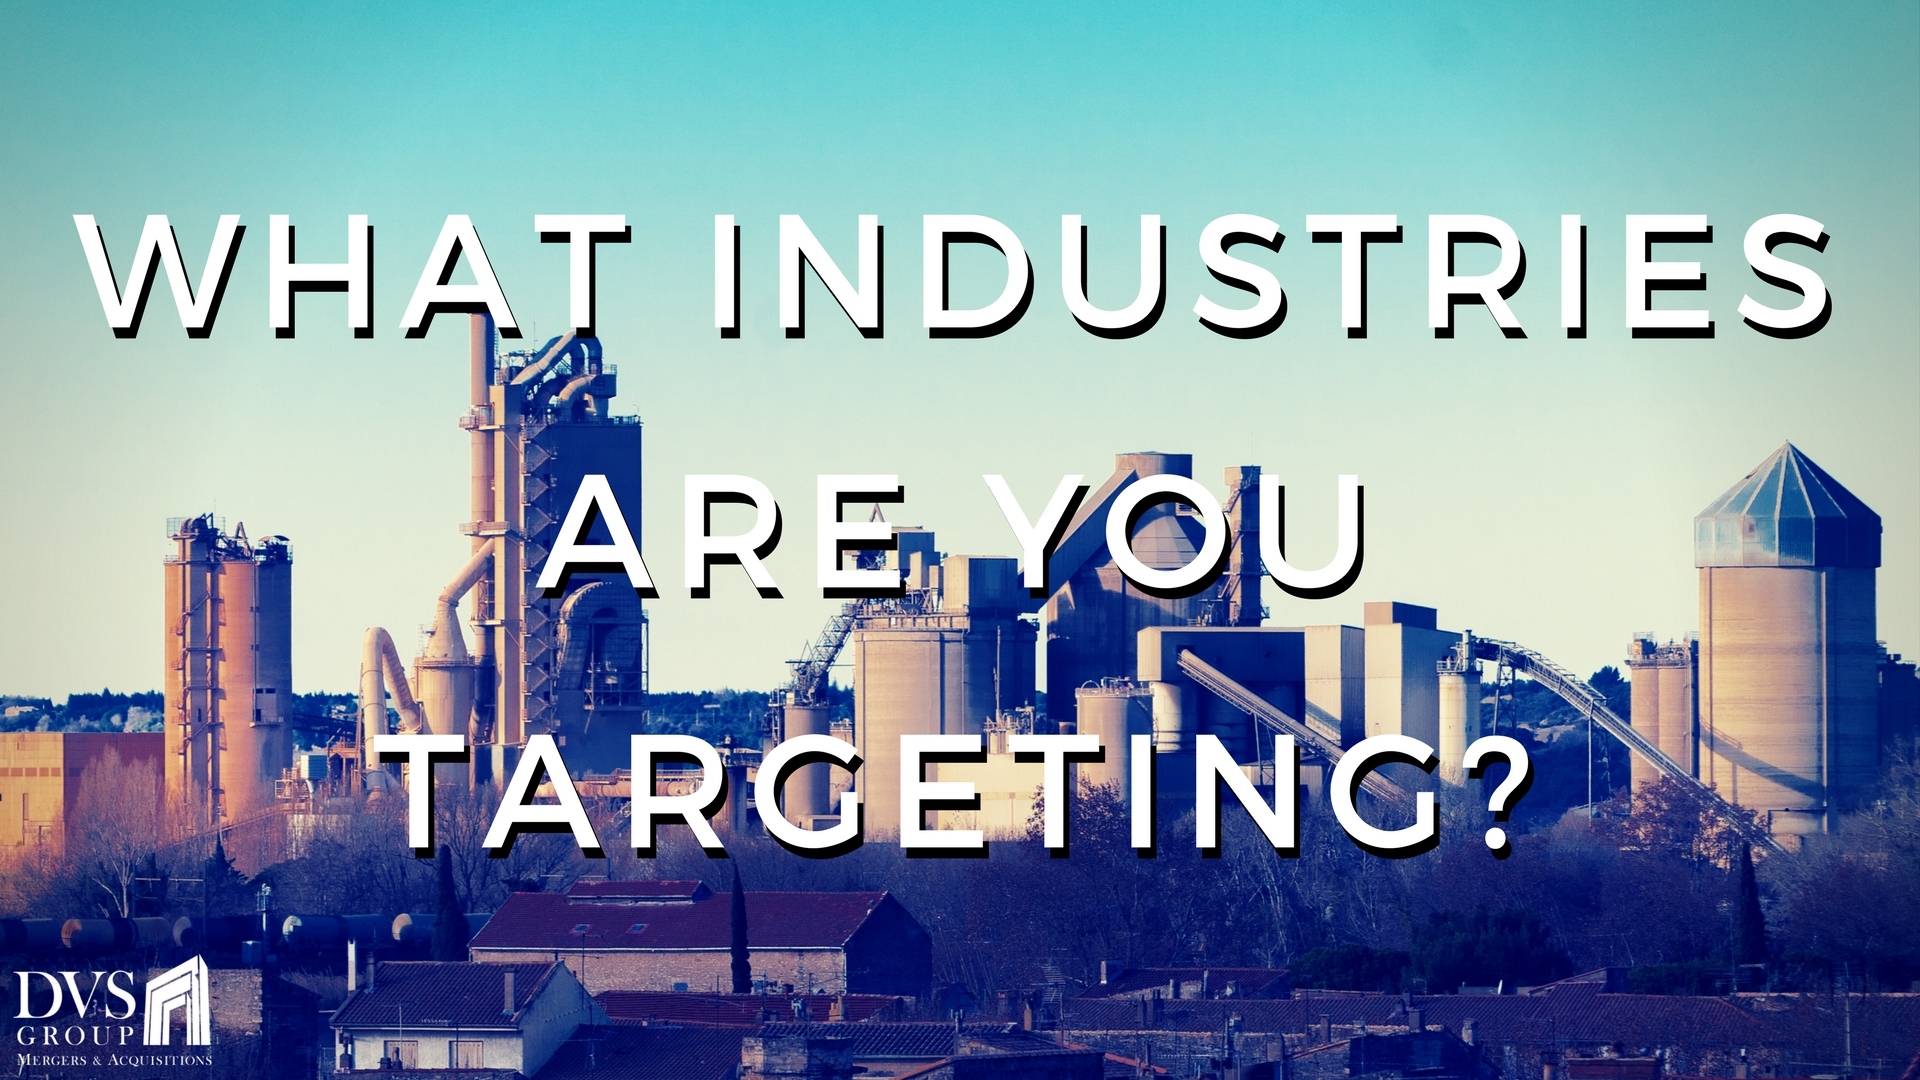 What Industries Are You Targeting?